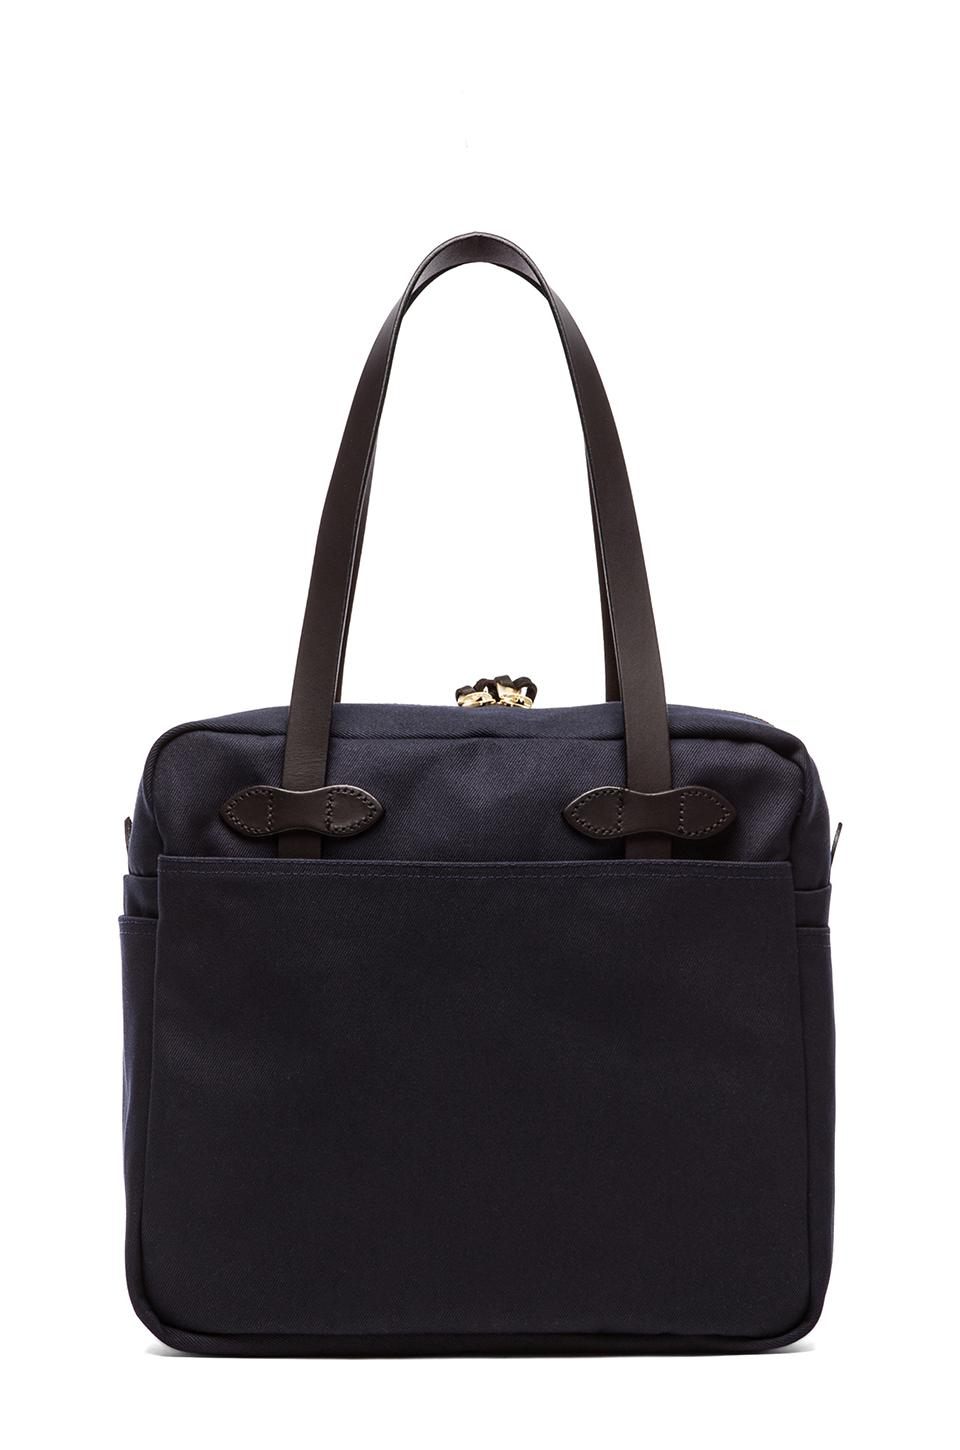 Filson Tote Bag with Zipper in Navy